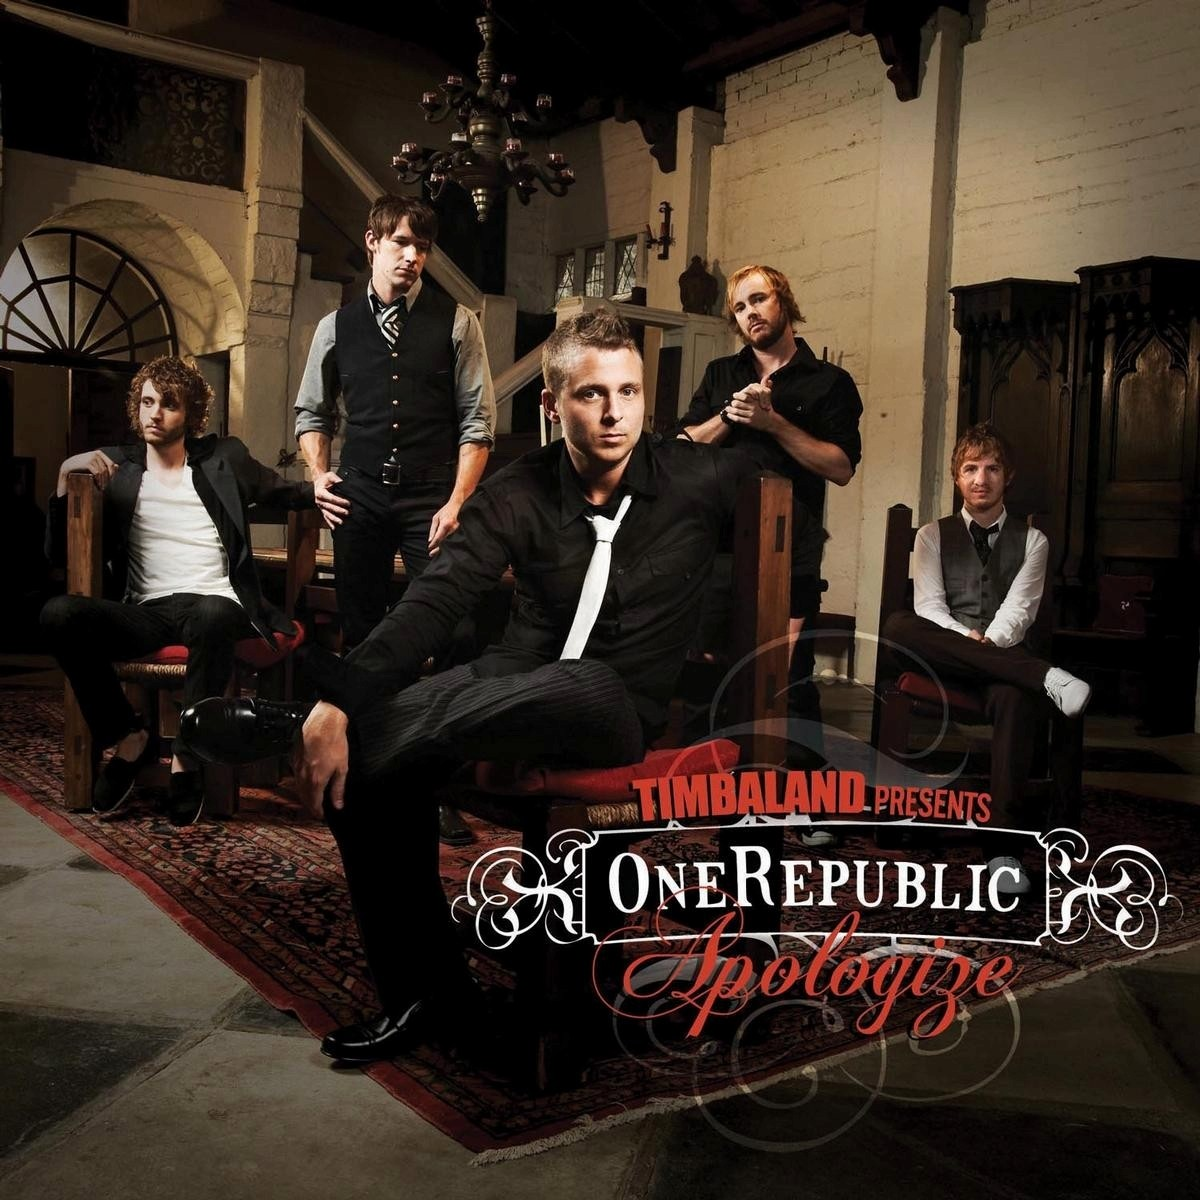 http://bestclub.com.ua/images/Gallery/O/one_republic/disc/2007_one_republic_ApologizeSINGLE.jpg